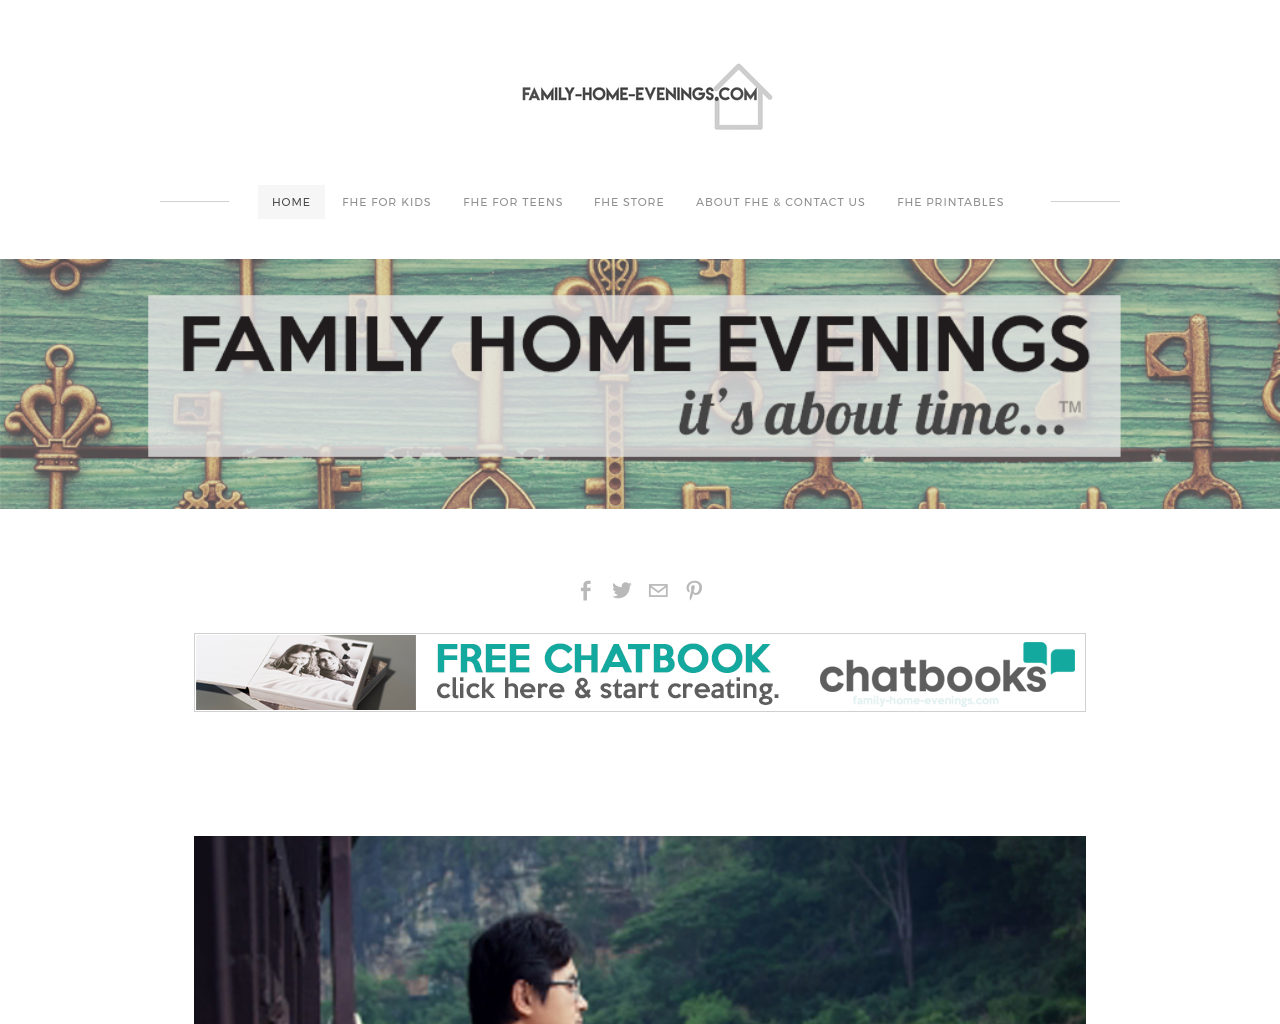 Family-Home-Evenings-Advertising-Reviews-Pricing